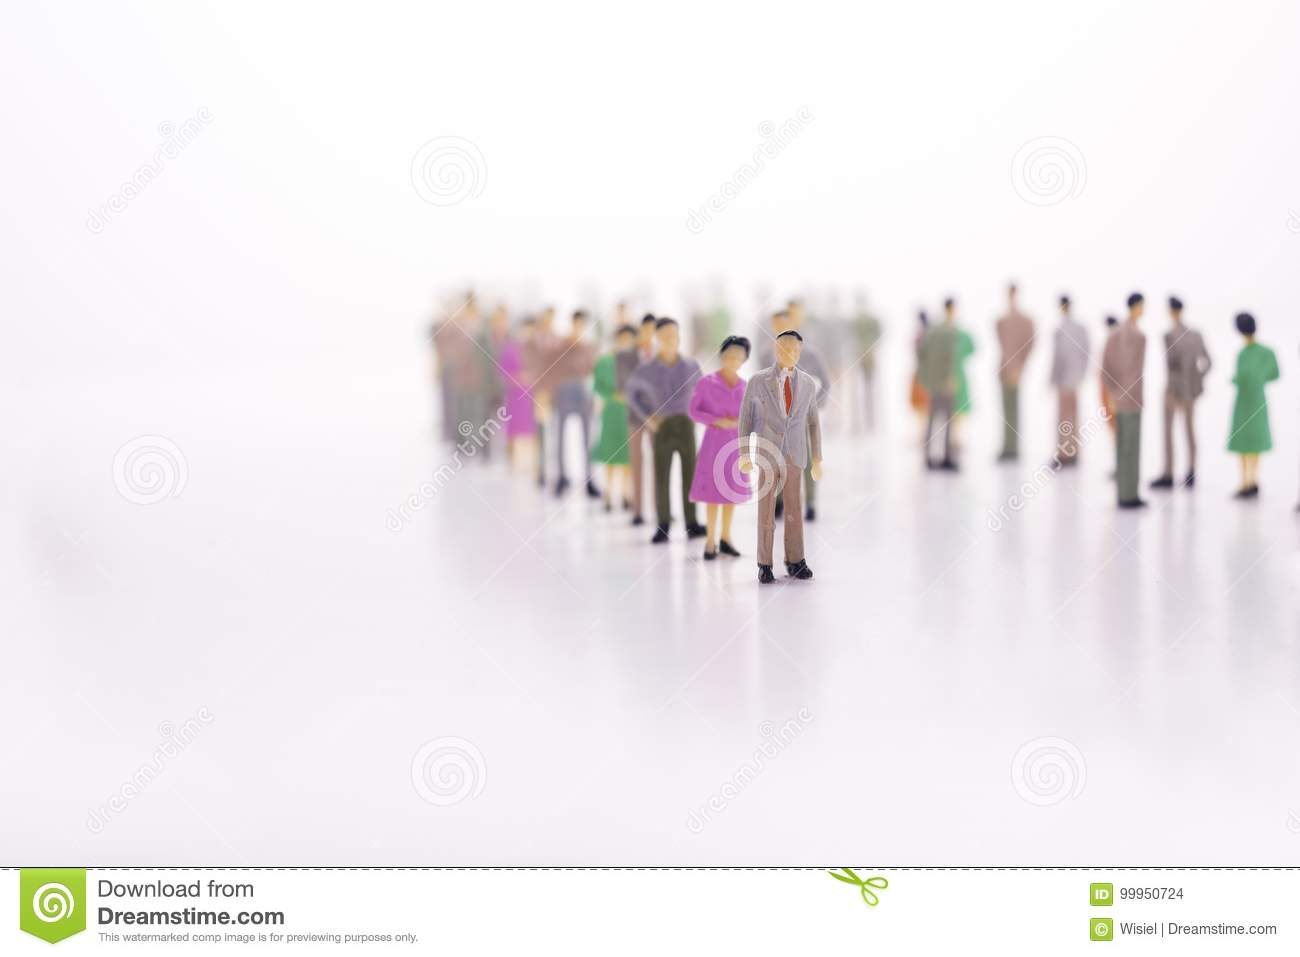 Group of miniature people over white background standing in line